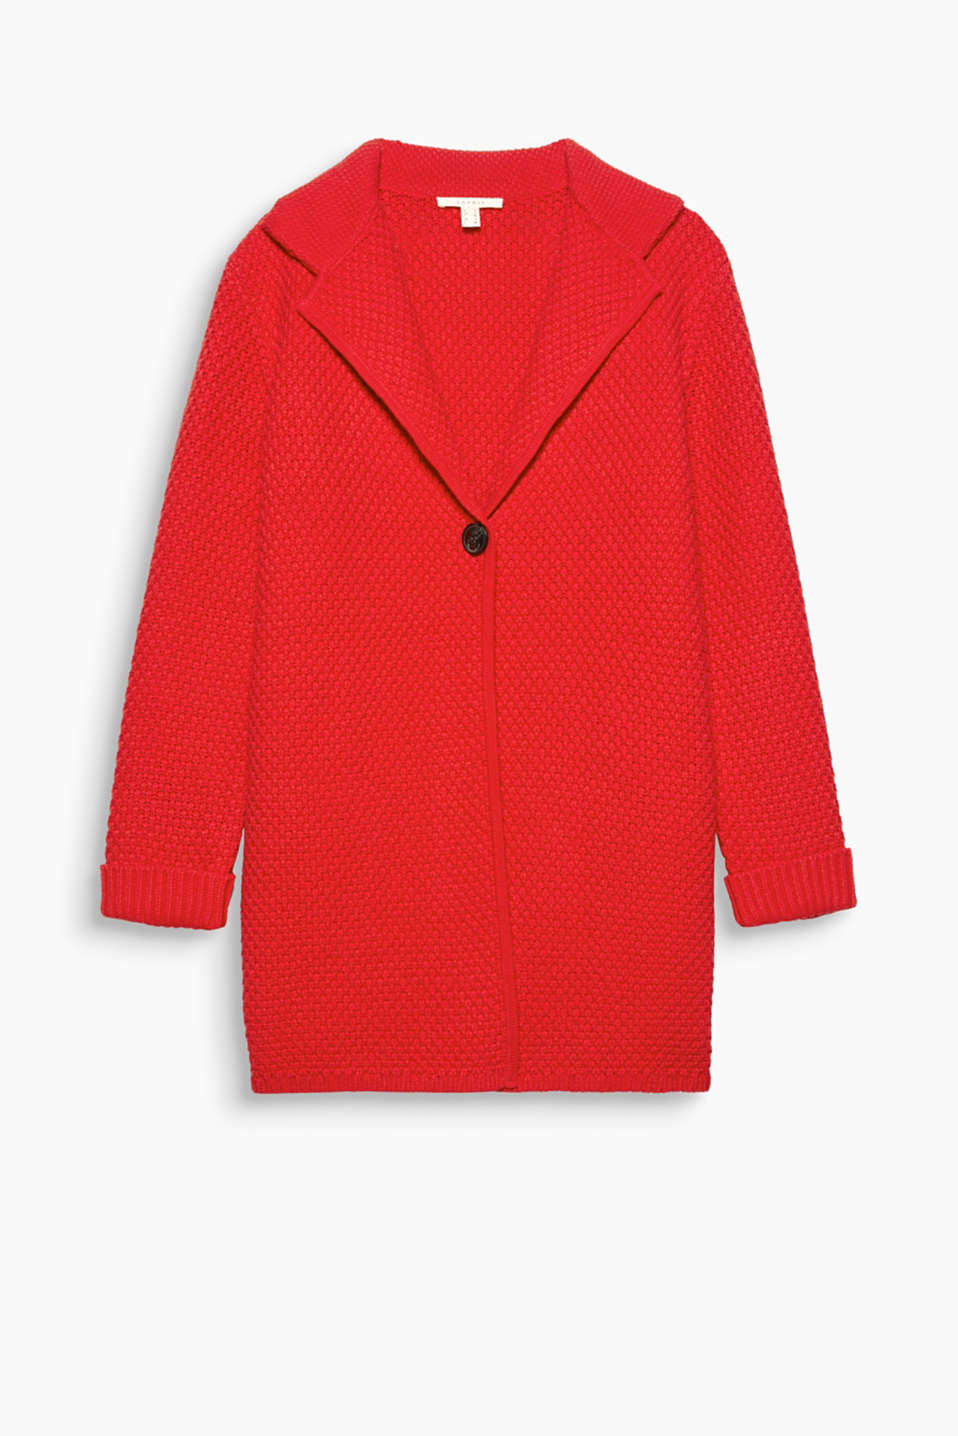 RED IS FUN - Lightweight outerwear for autumn: throw-on style, with a great texture, wide lapel and a button